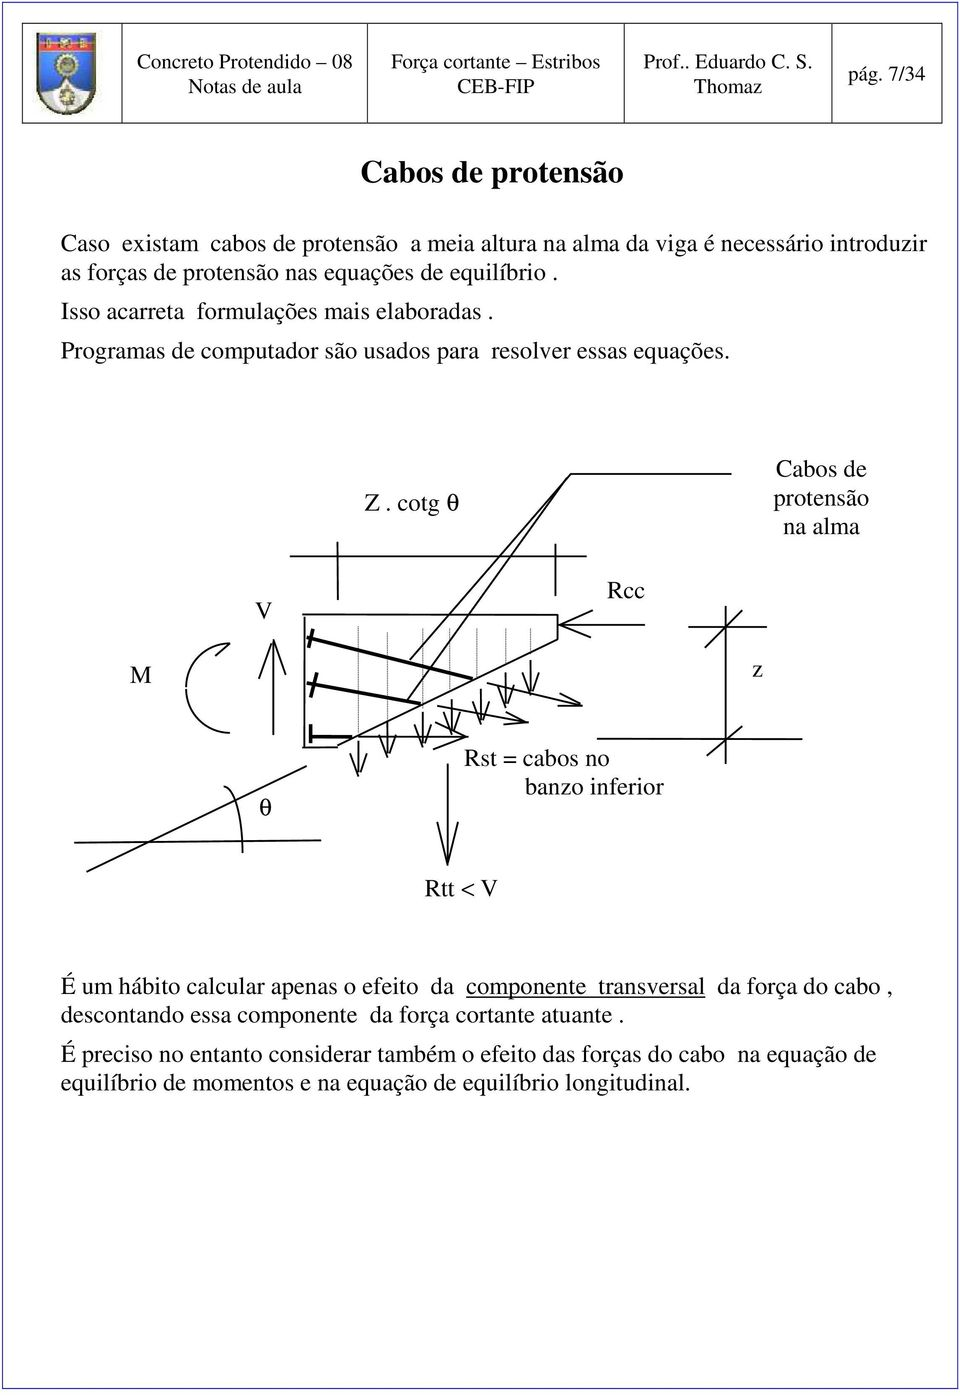 cotg θ Cabos de protensão na alma V Rcc M θ Rst = cabos no bano inferior Rtt < V É um hábito calcular apenas o efeito da componente transversal da força do